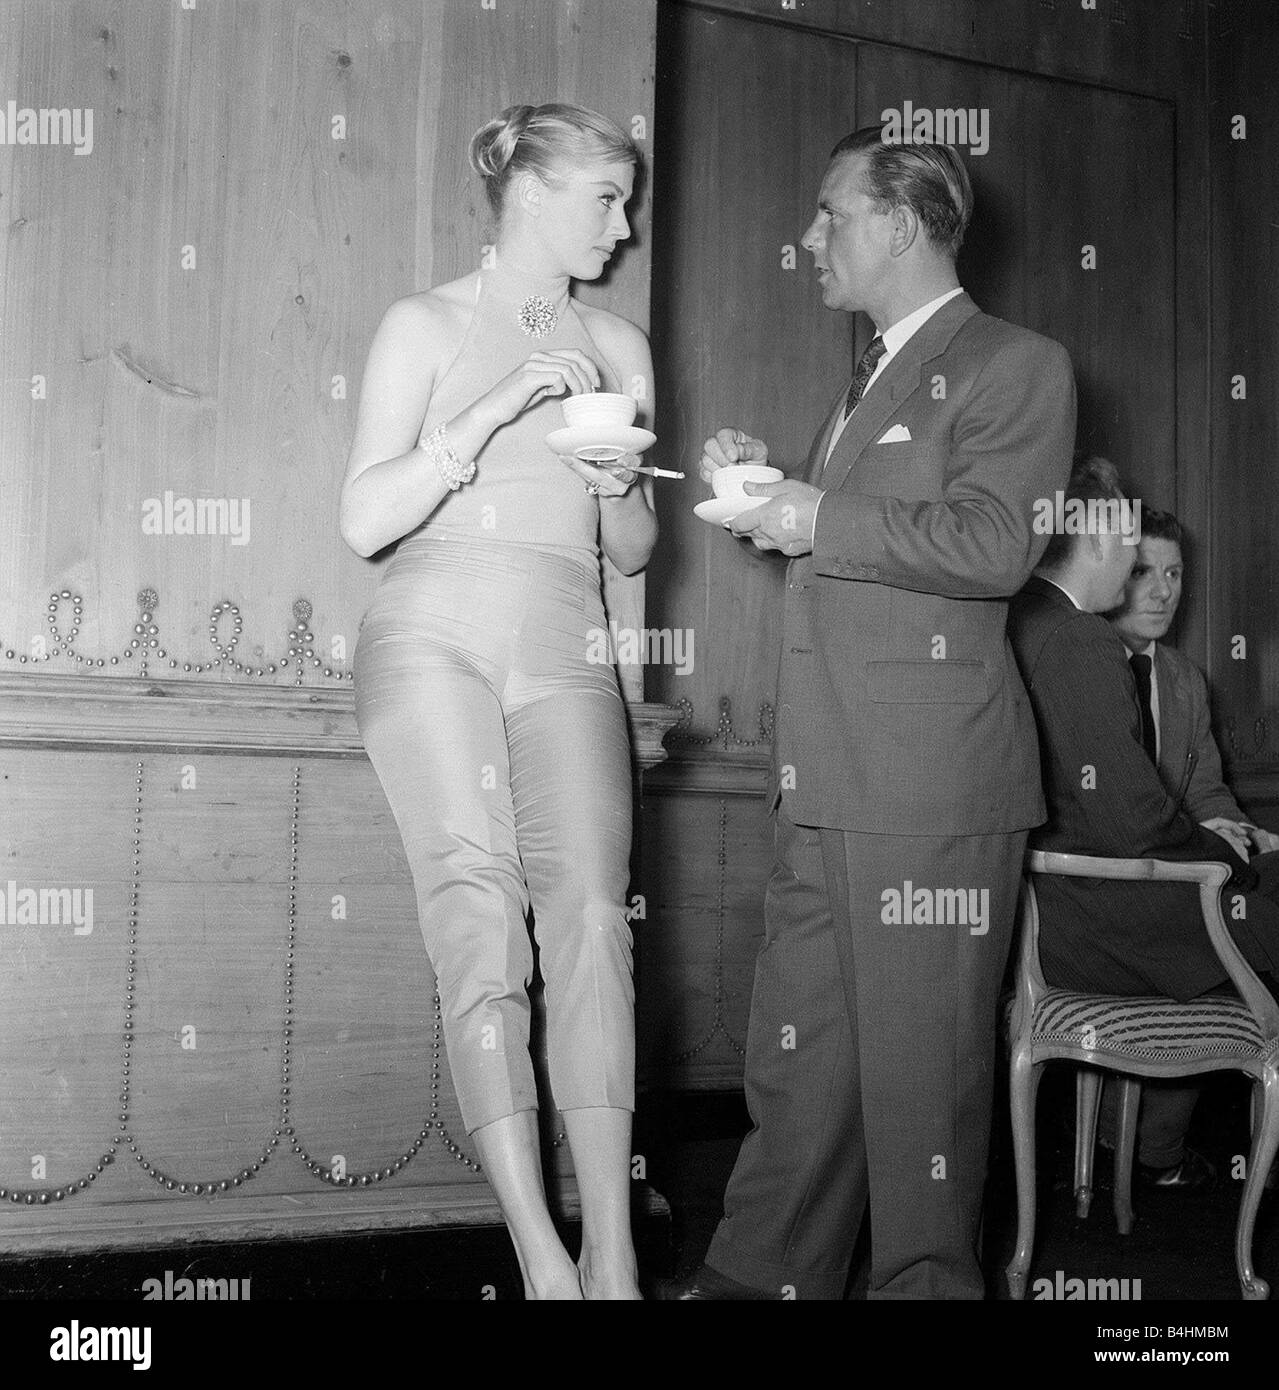 Actor and comedian Norman Wisdom enjoys a cup of tea with actress Anita Ekberg at the savoy Hotel May 1956 - Stock Image